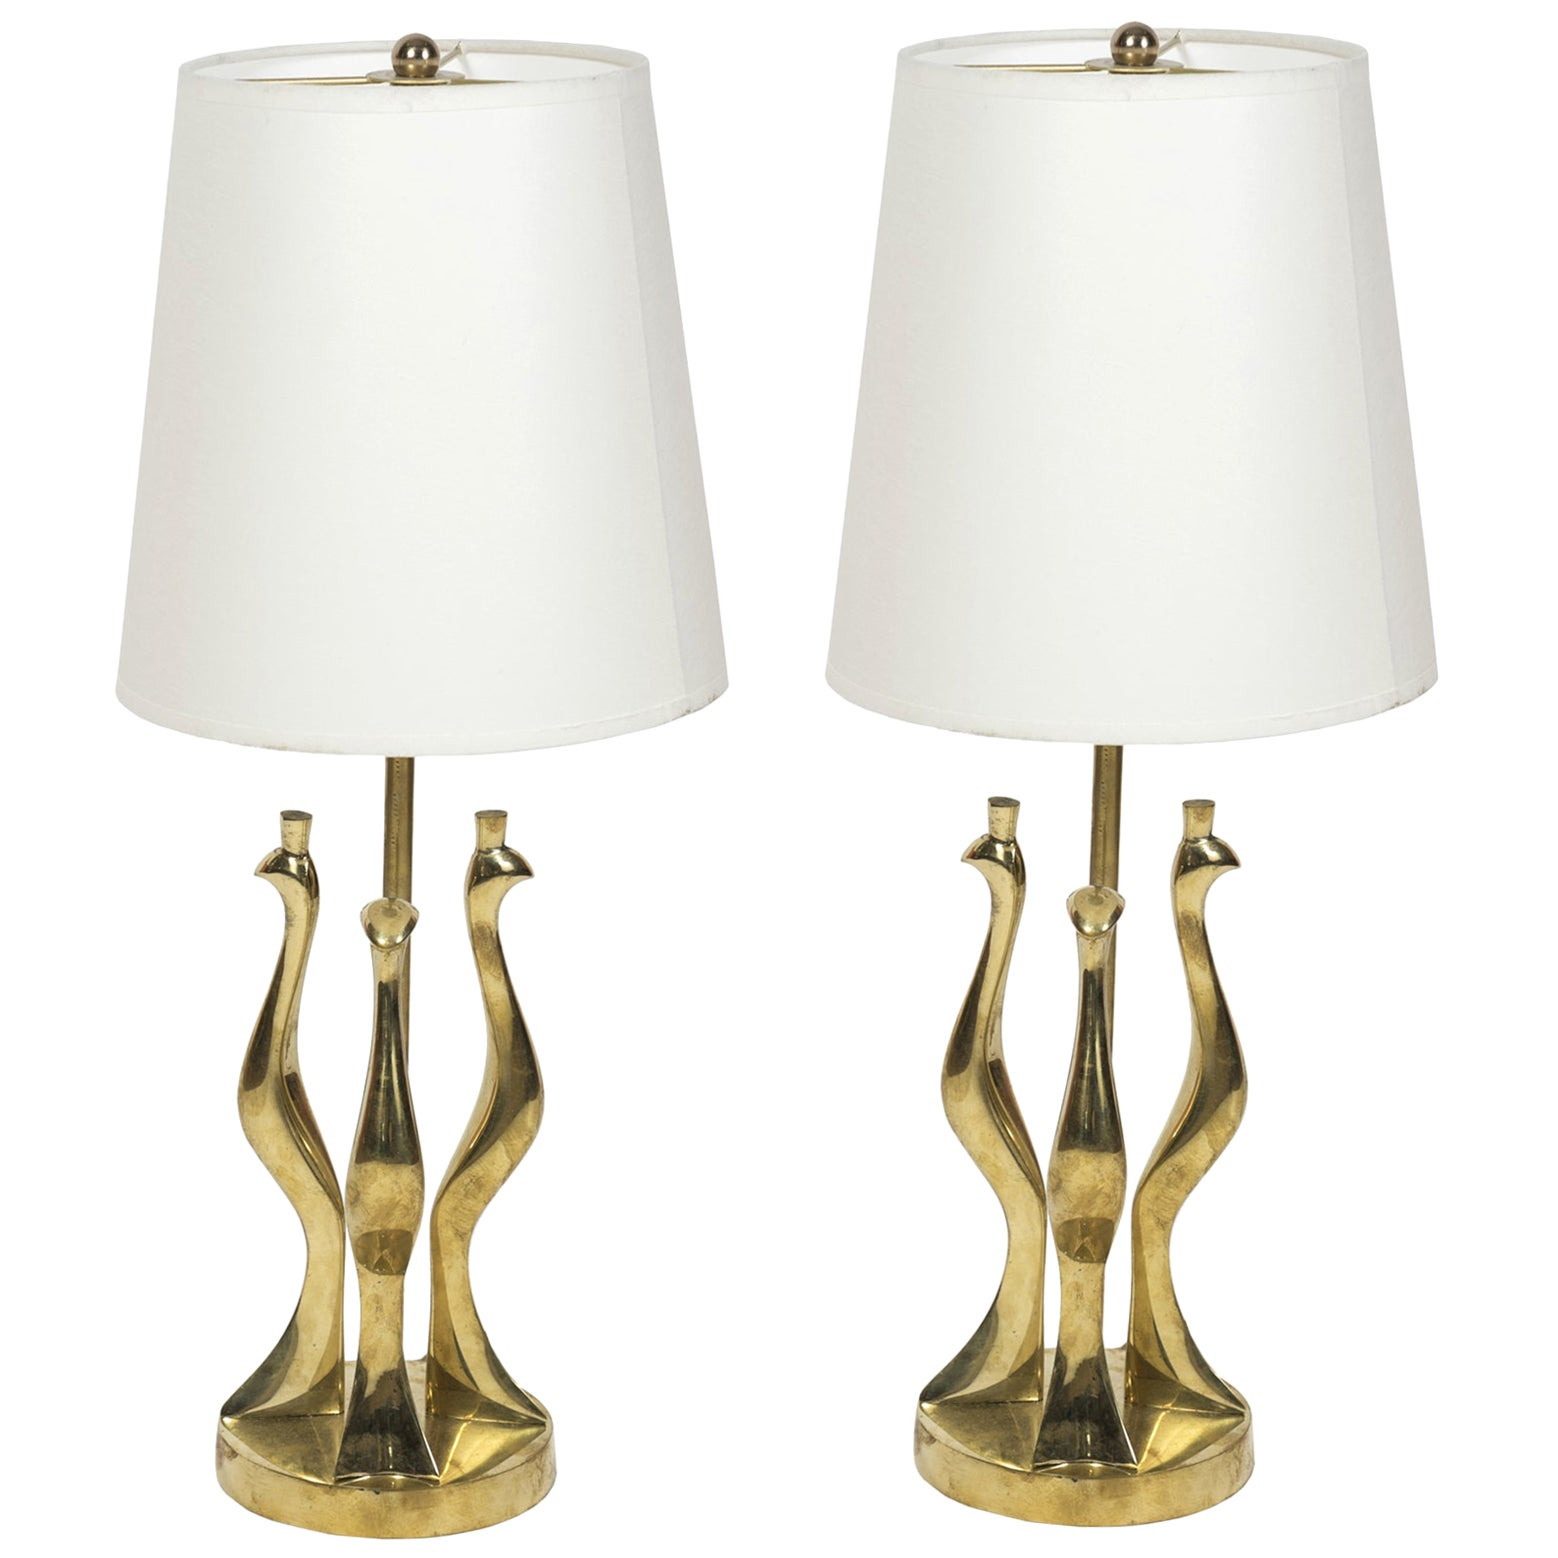 Pair of Bronze Lamps by Riccardo Scarpa